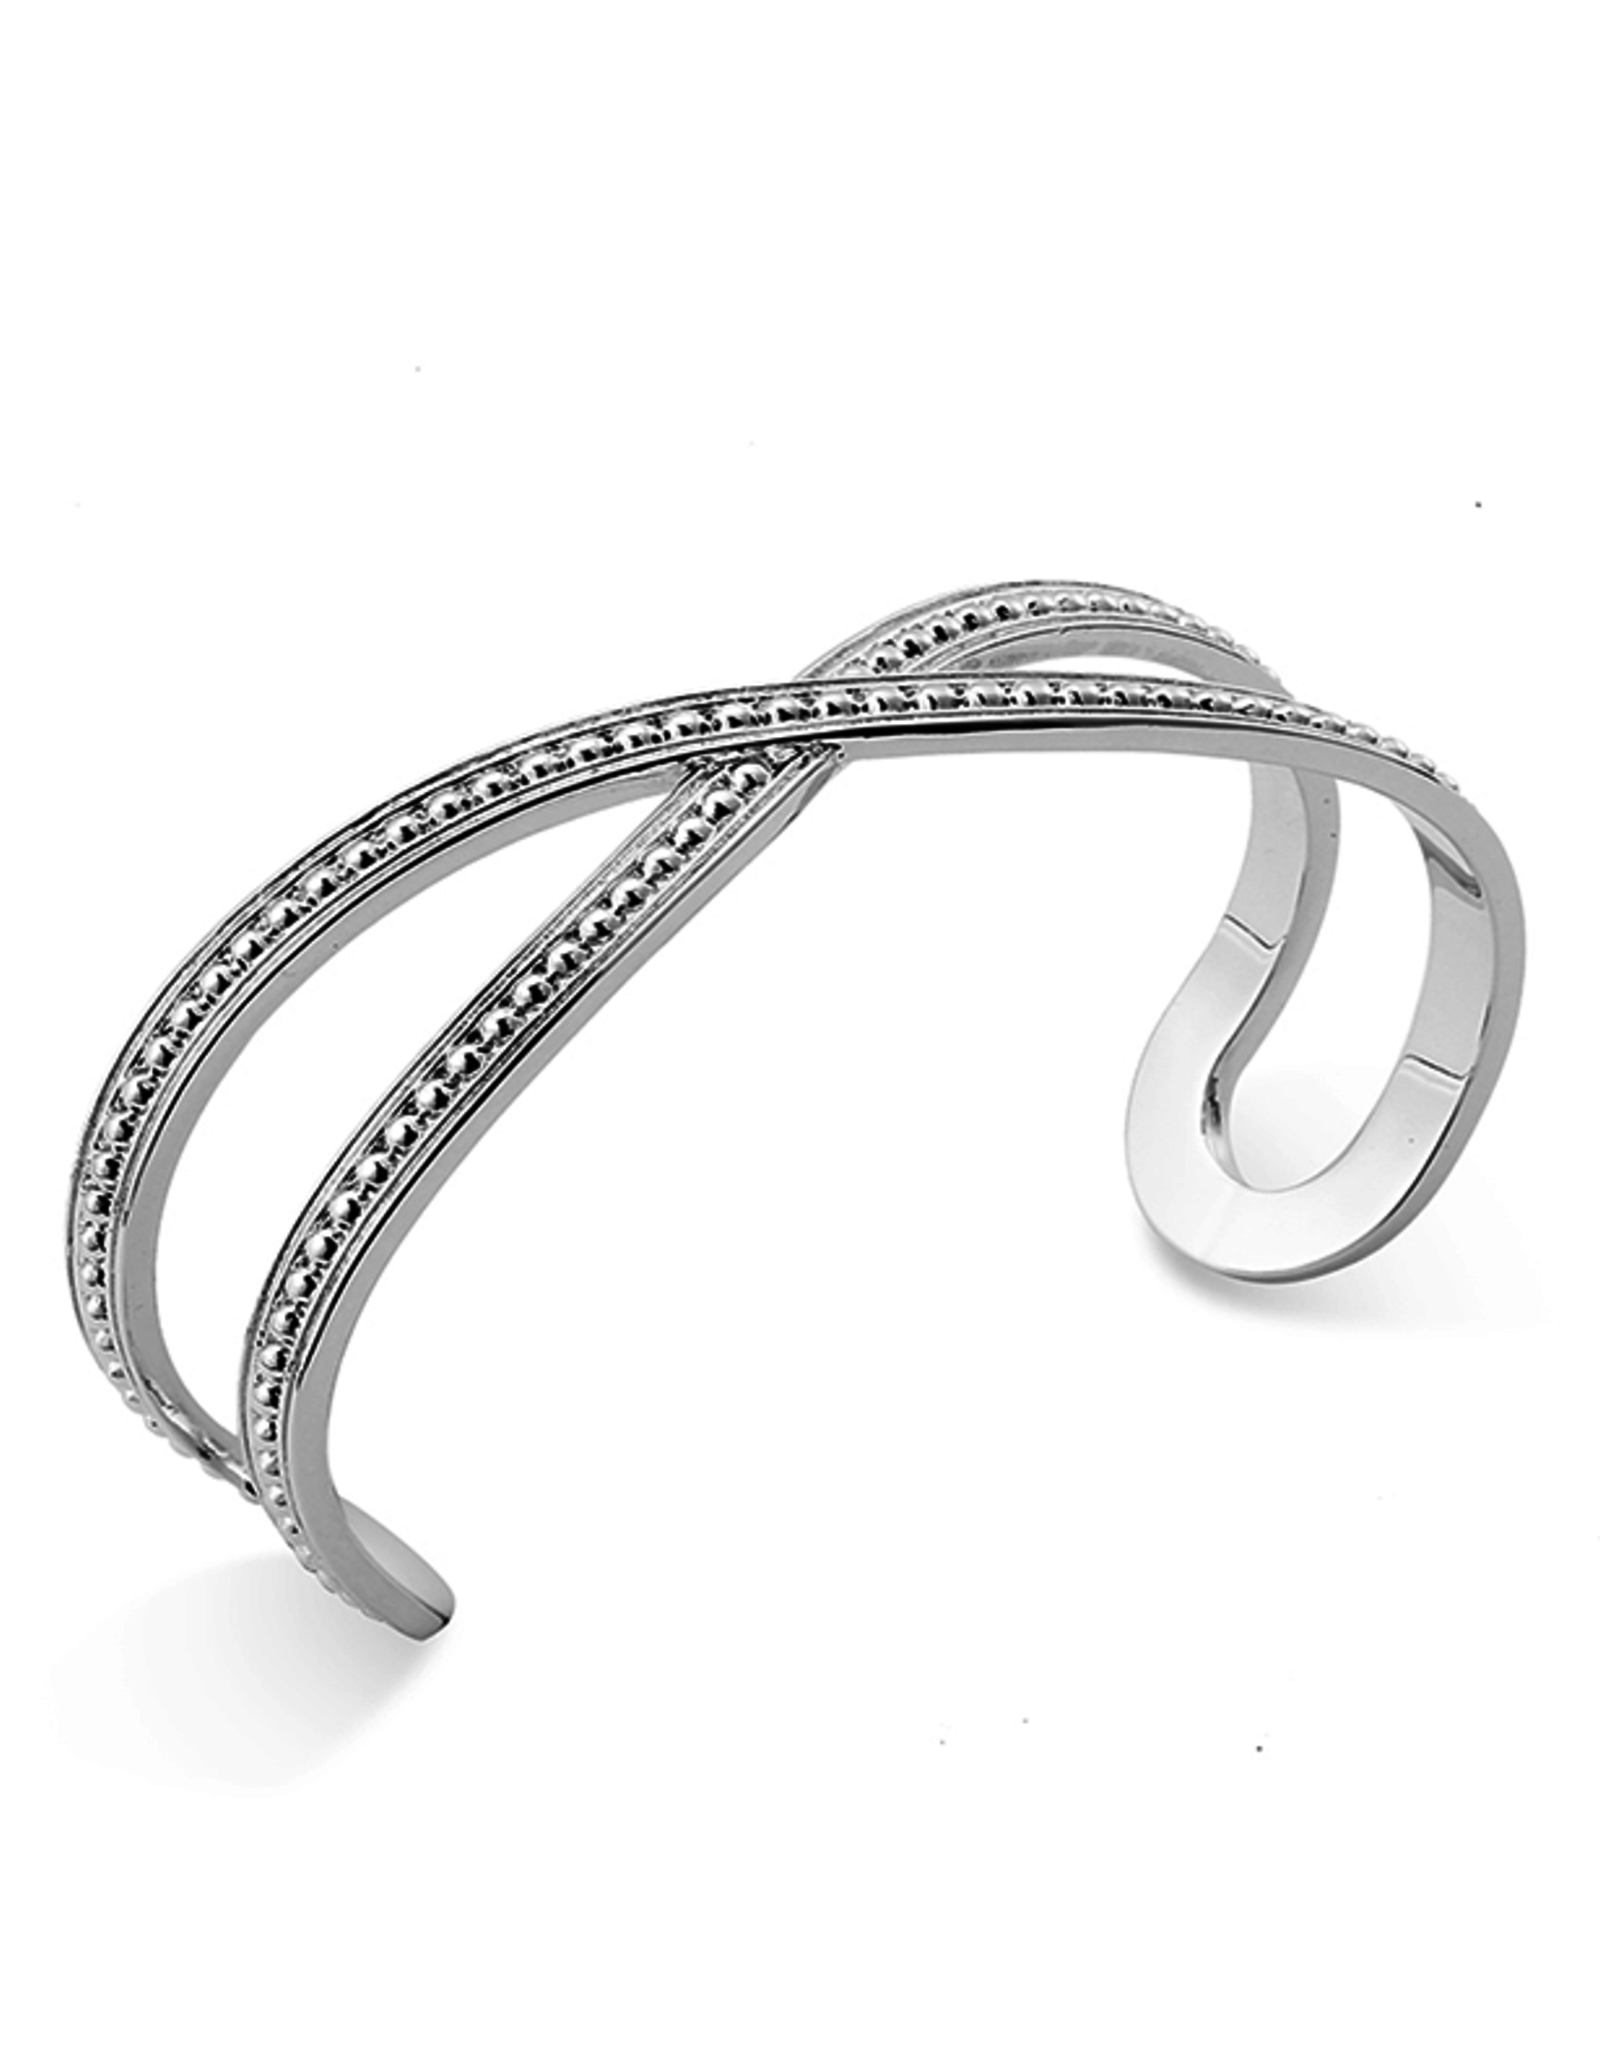 Natalie Wood Designs Beaded Cuff Bracelet - Silver